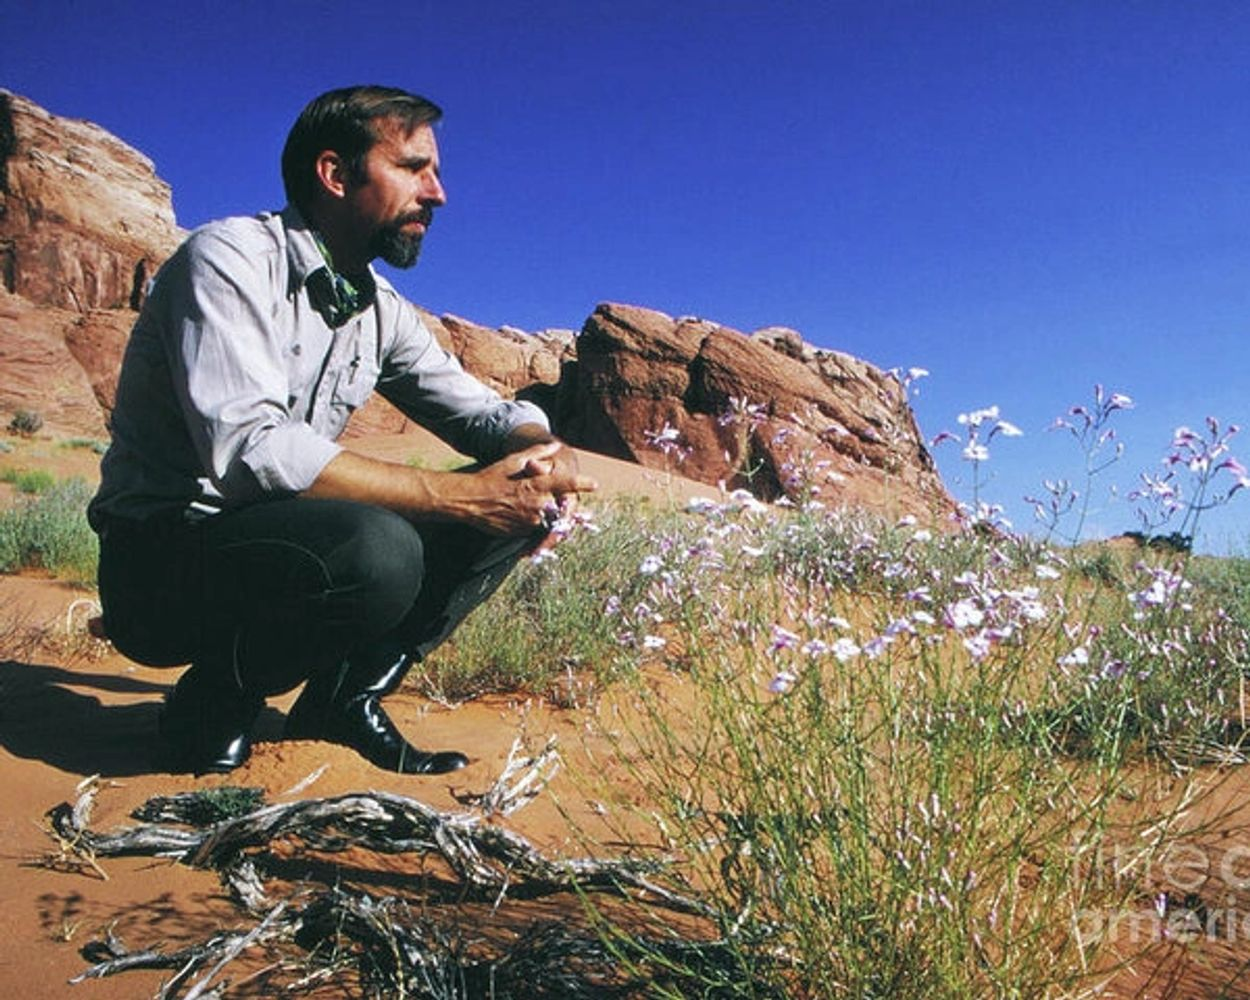 Edward Paul Abbey looks across the desert surrounded by rock formations, driftwood, and wildflowers.